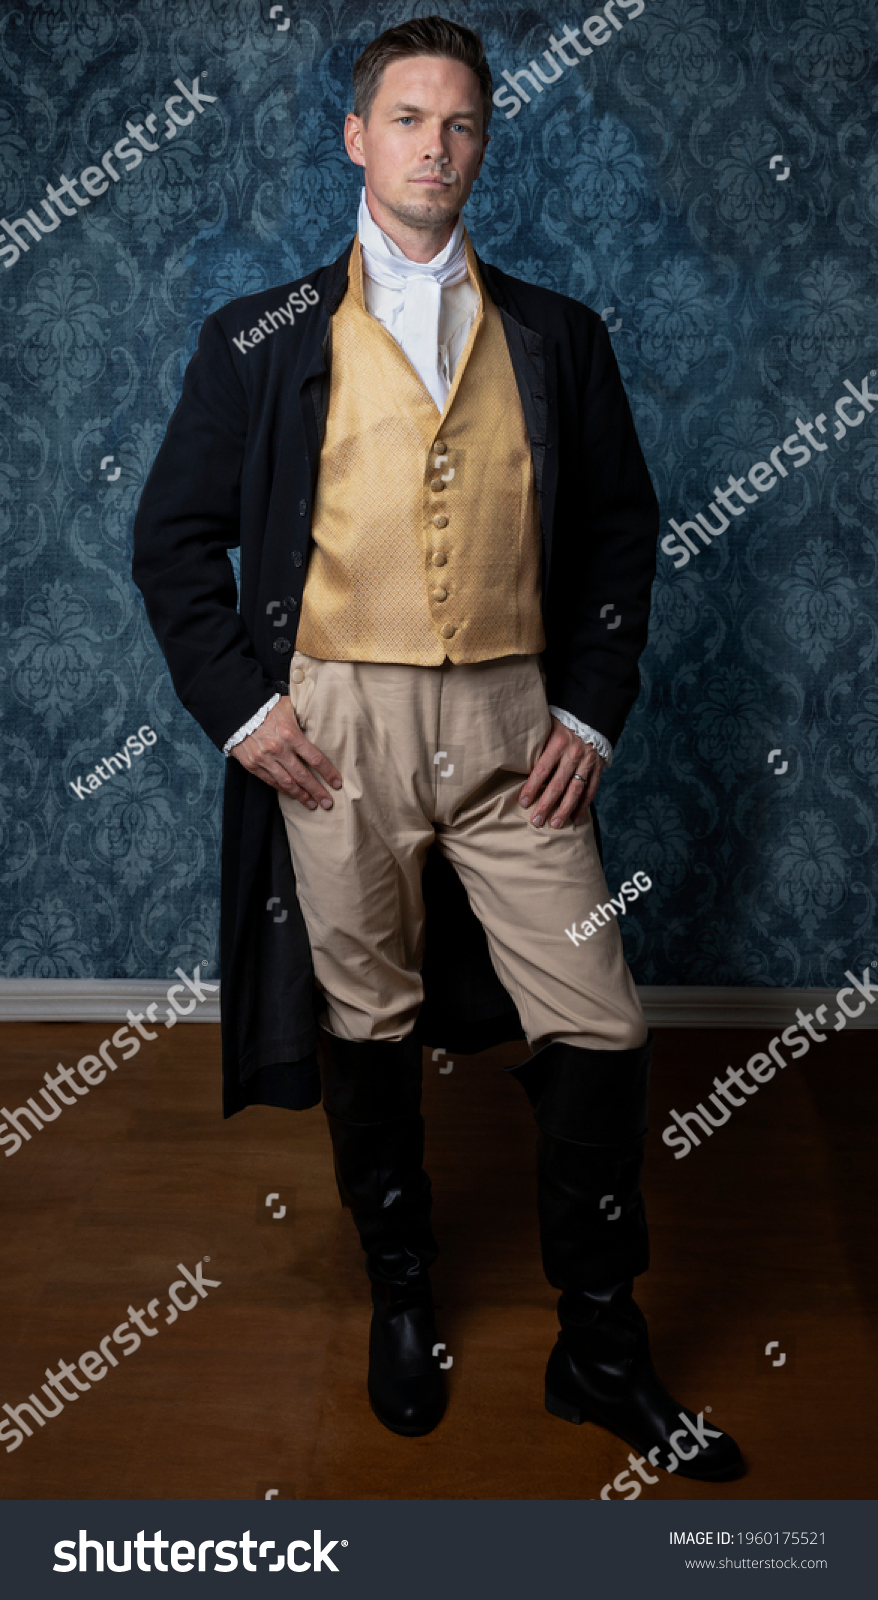 A handsome Regency gentleman wearing a gold waistcoat and black jacket and standing in a room with blue wallpaper and a wooden floor #1960175521